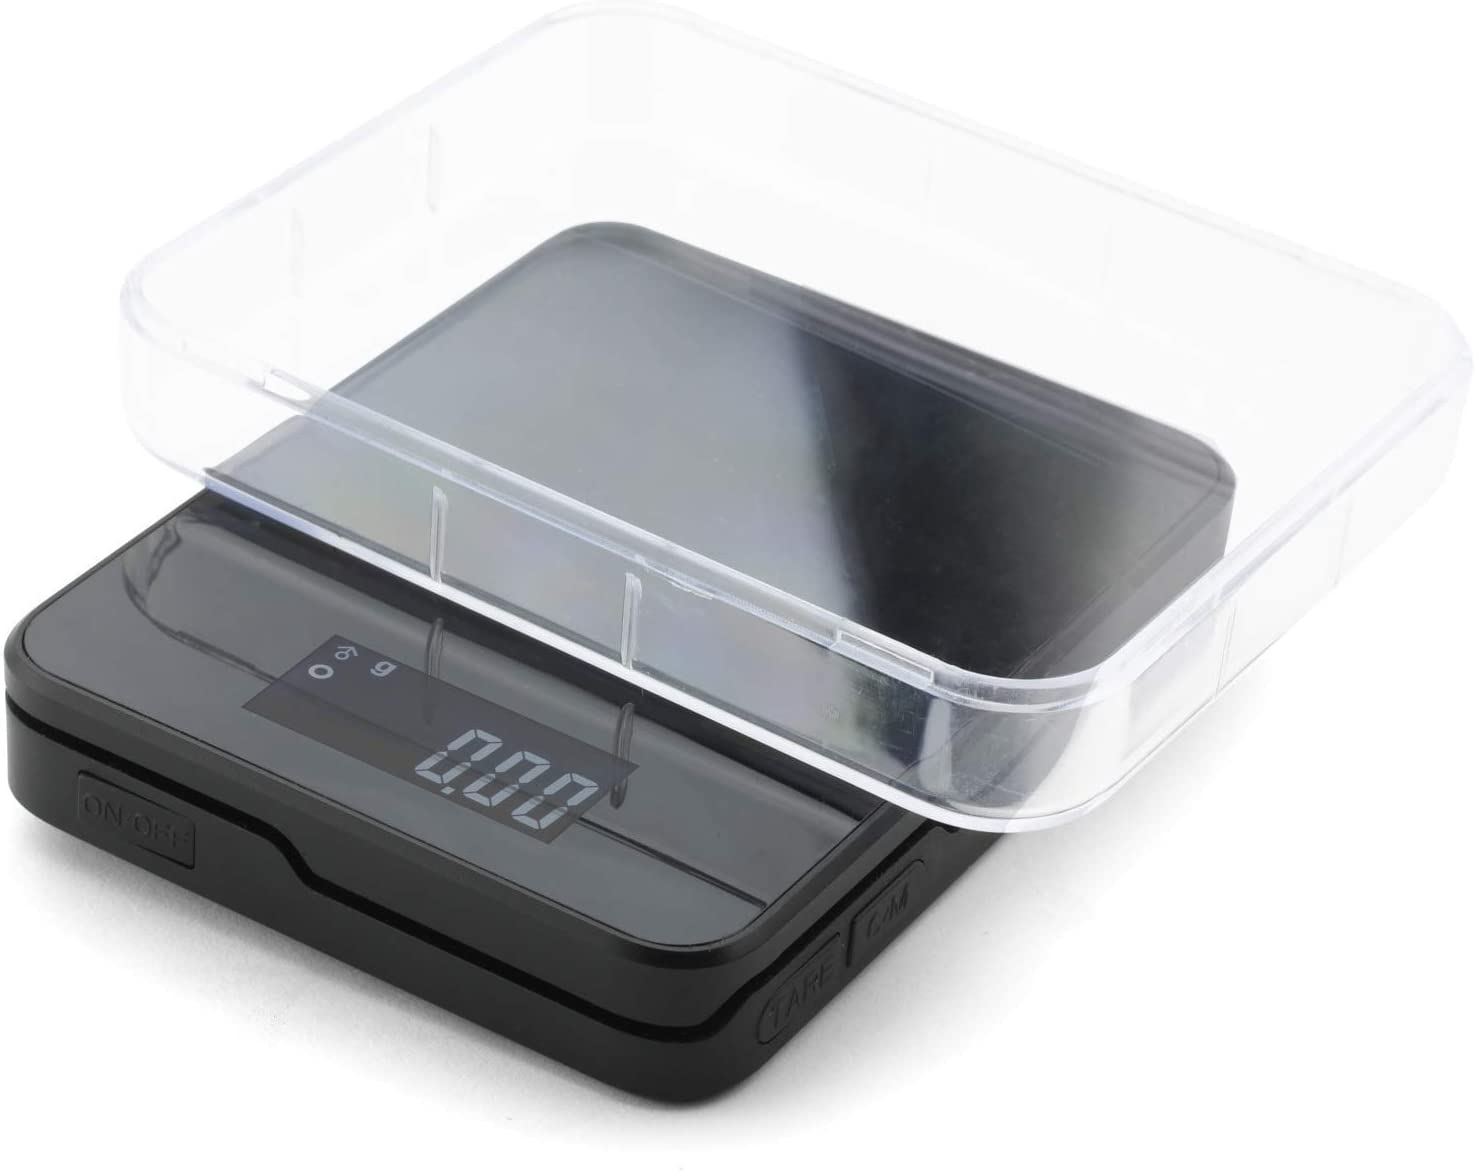 Truweigh - STORM Digital Mini Scale - (200g x 0.01g - Black) and Long Lasting Portable Grams Scale - Kitchen Scale - Food Scale - Postal Scale - Herb Scale - Meal Prep Scale